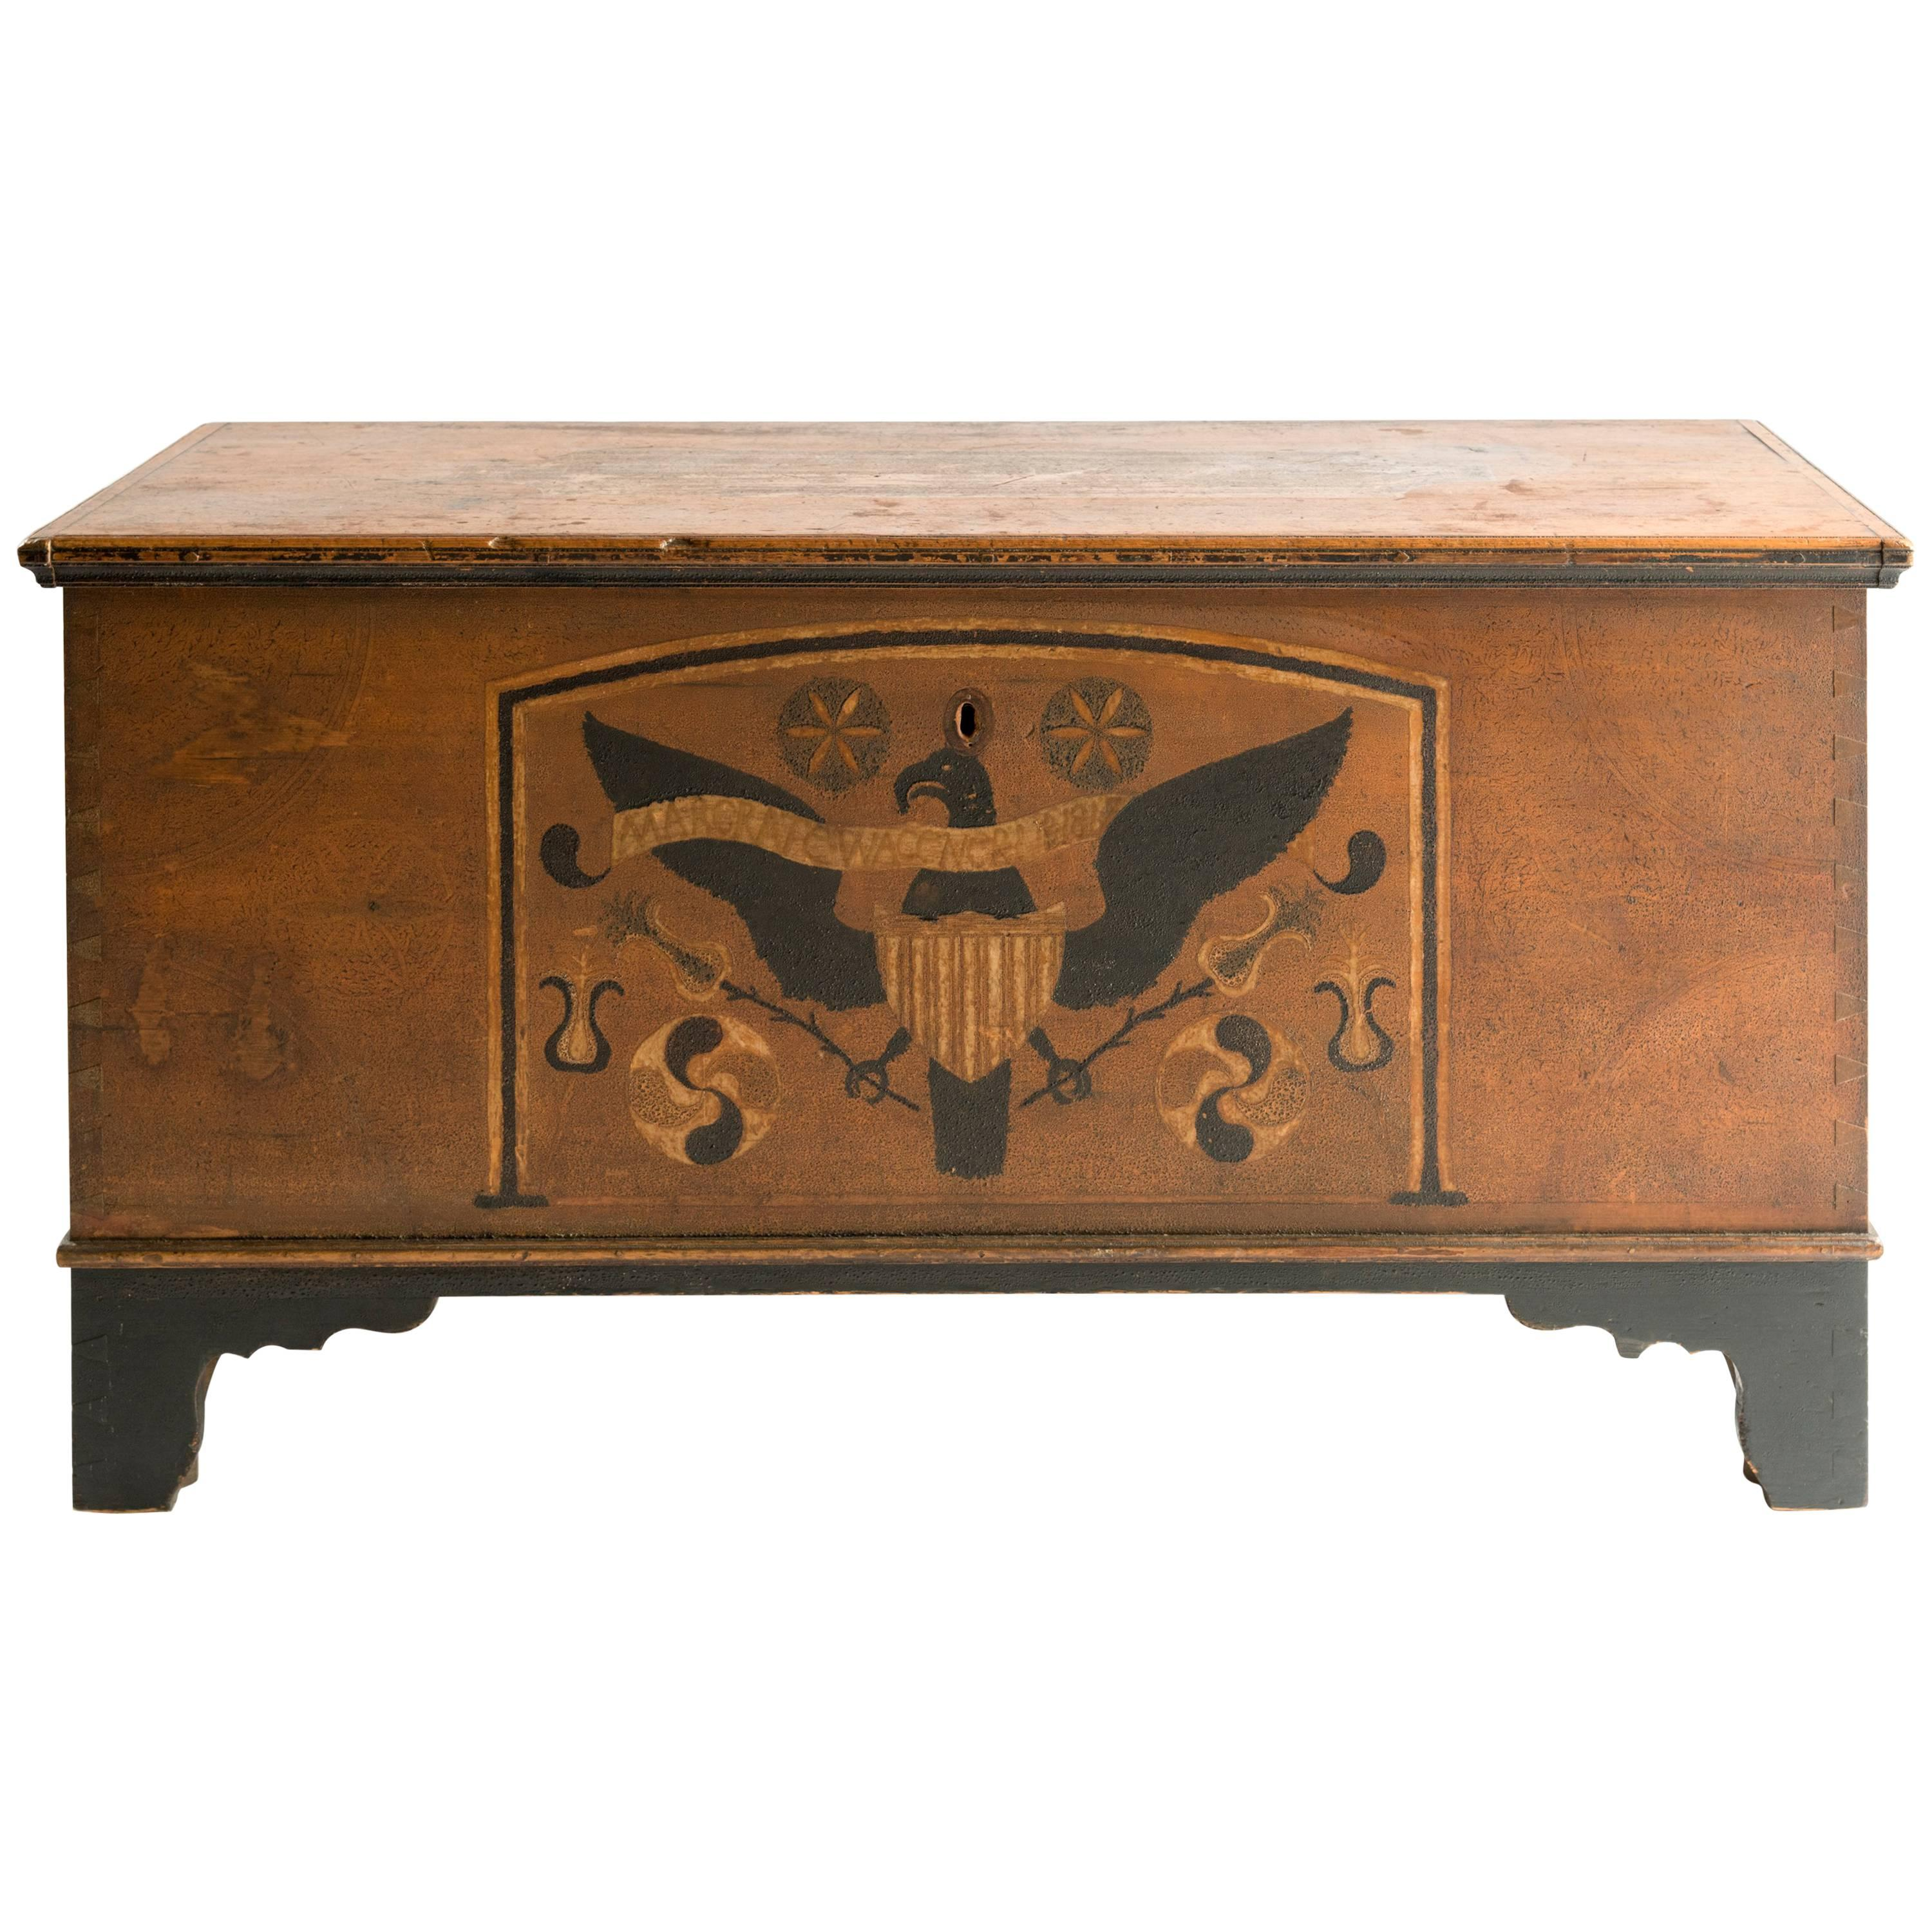 Pennsylvania Polychrome And Eagle Decorated Pine Blanket Chest